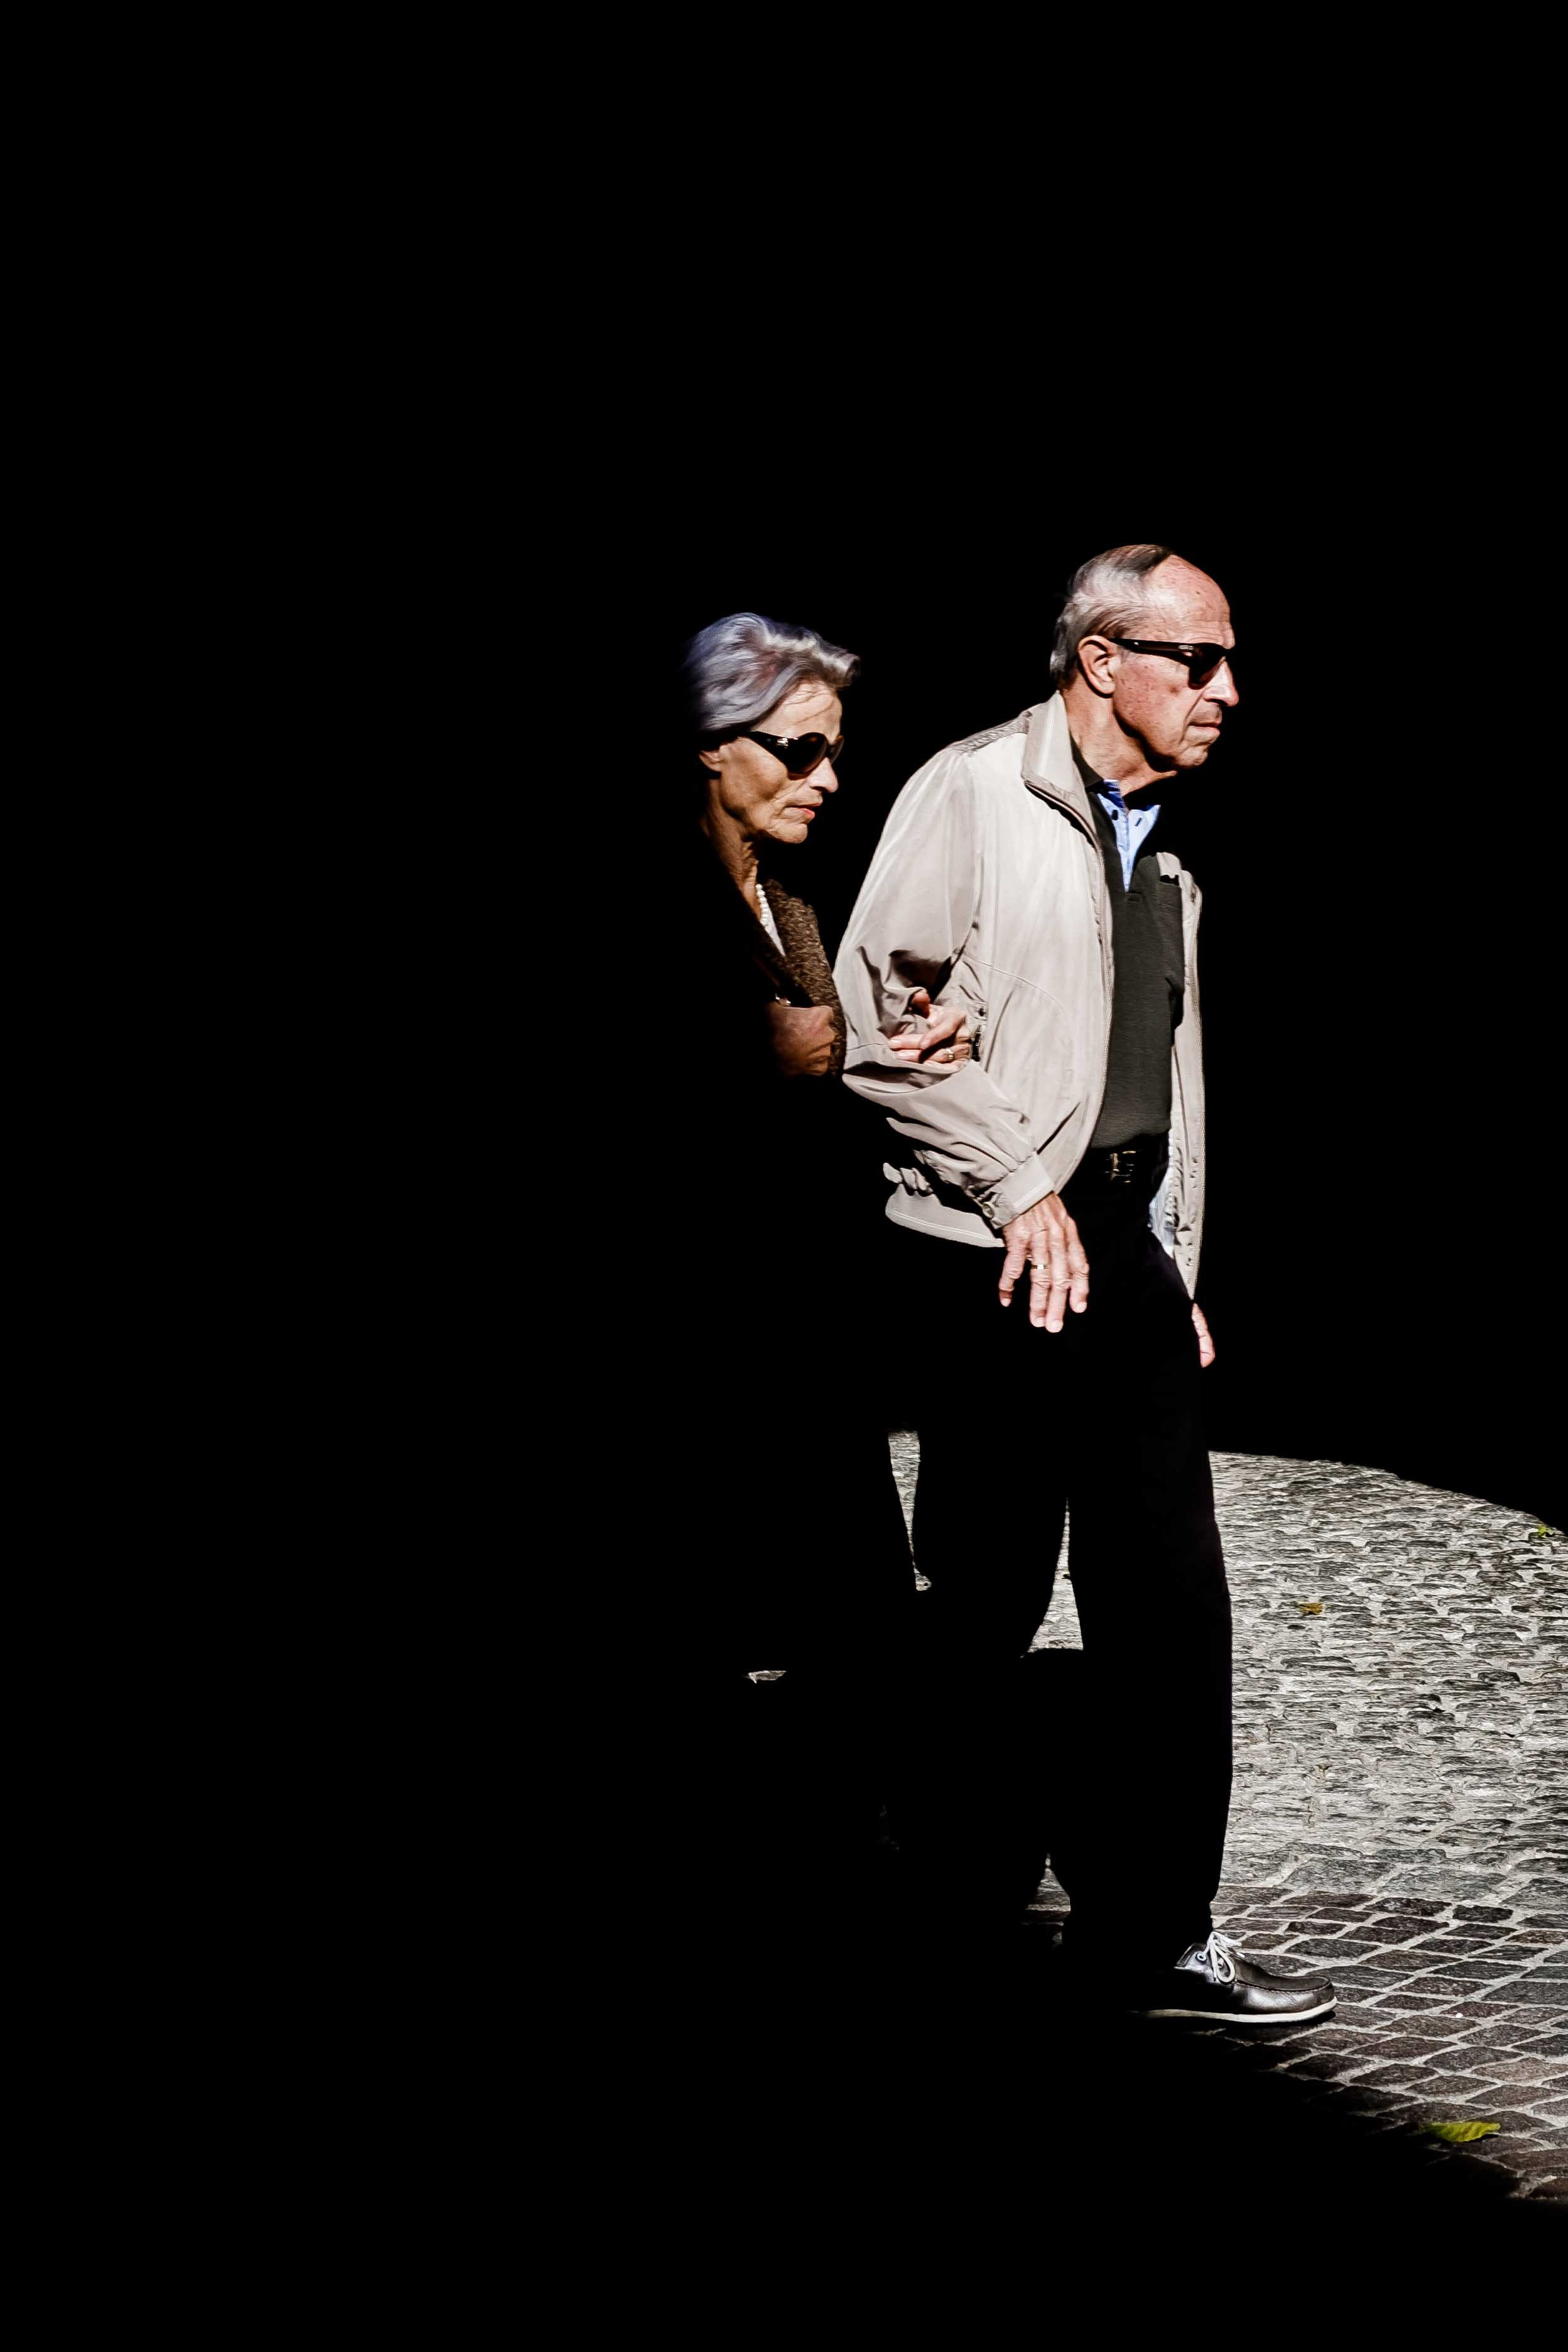 Man and woman linking arms and wearing sunglasses walking down the street